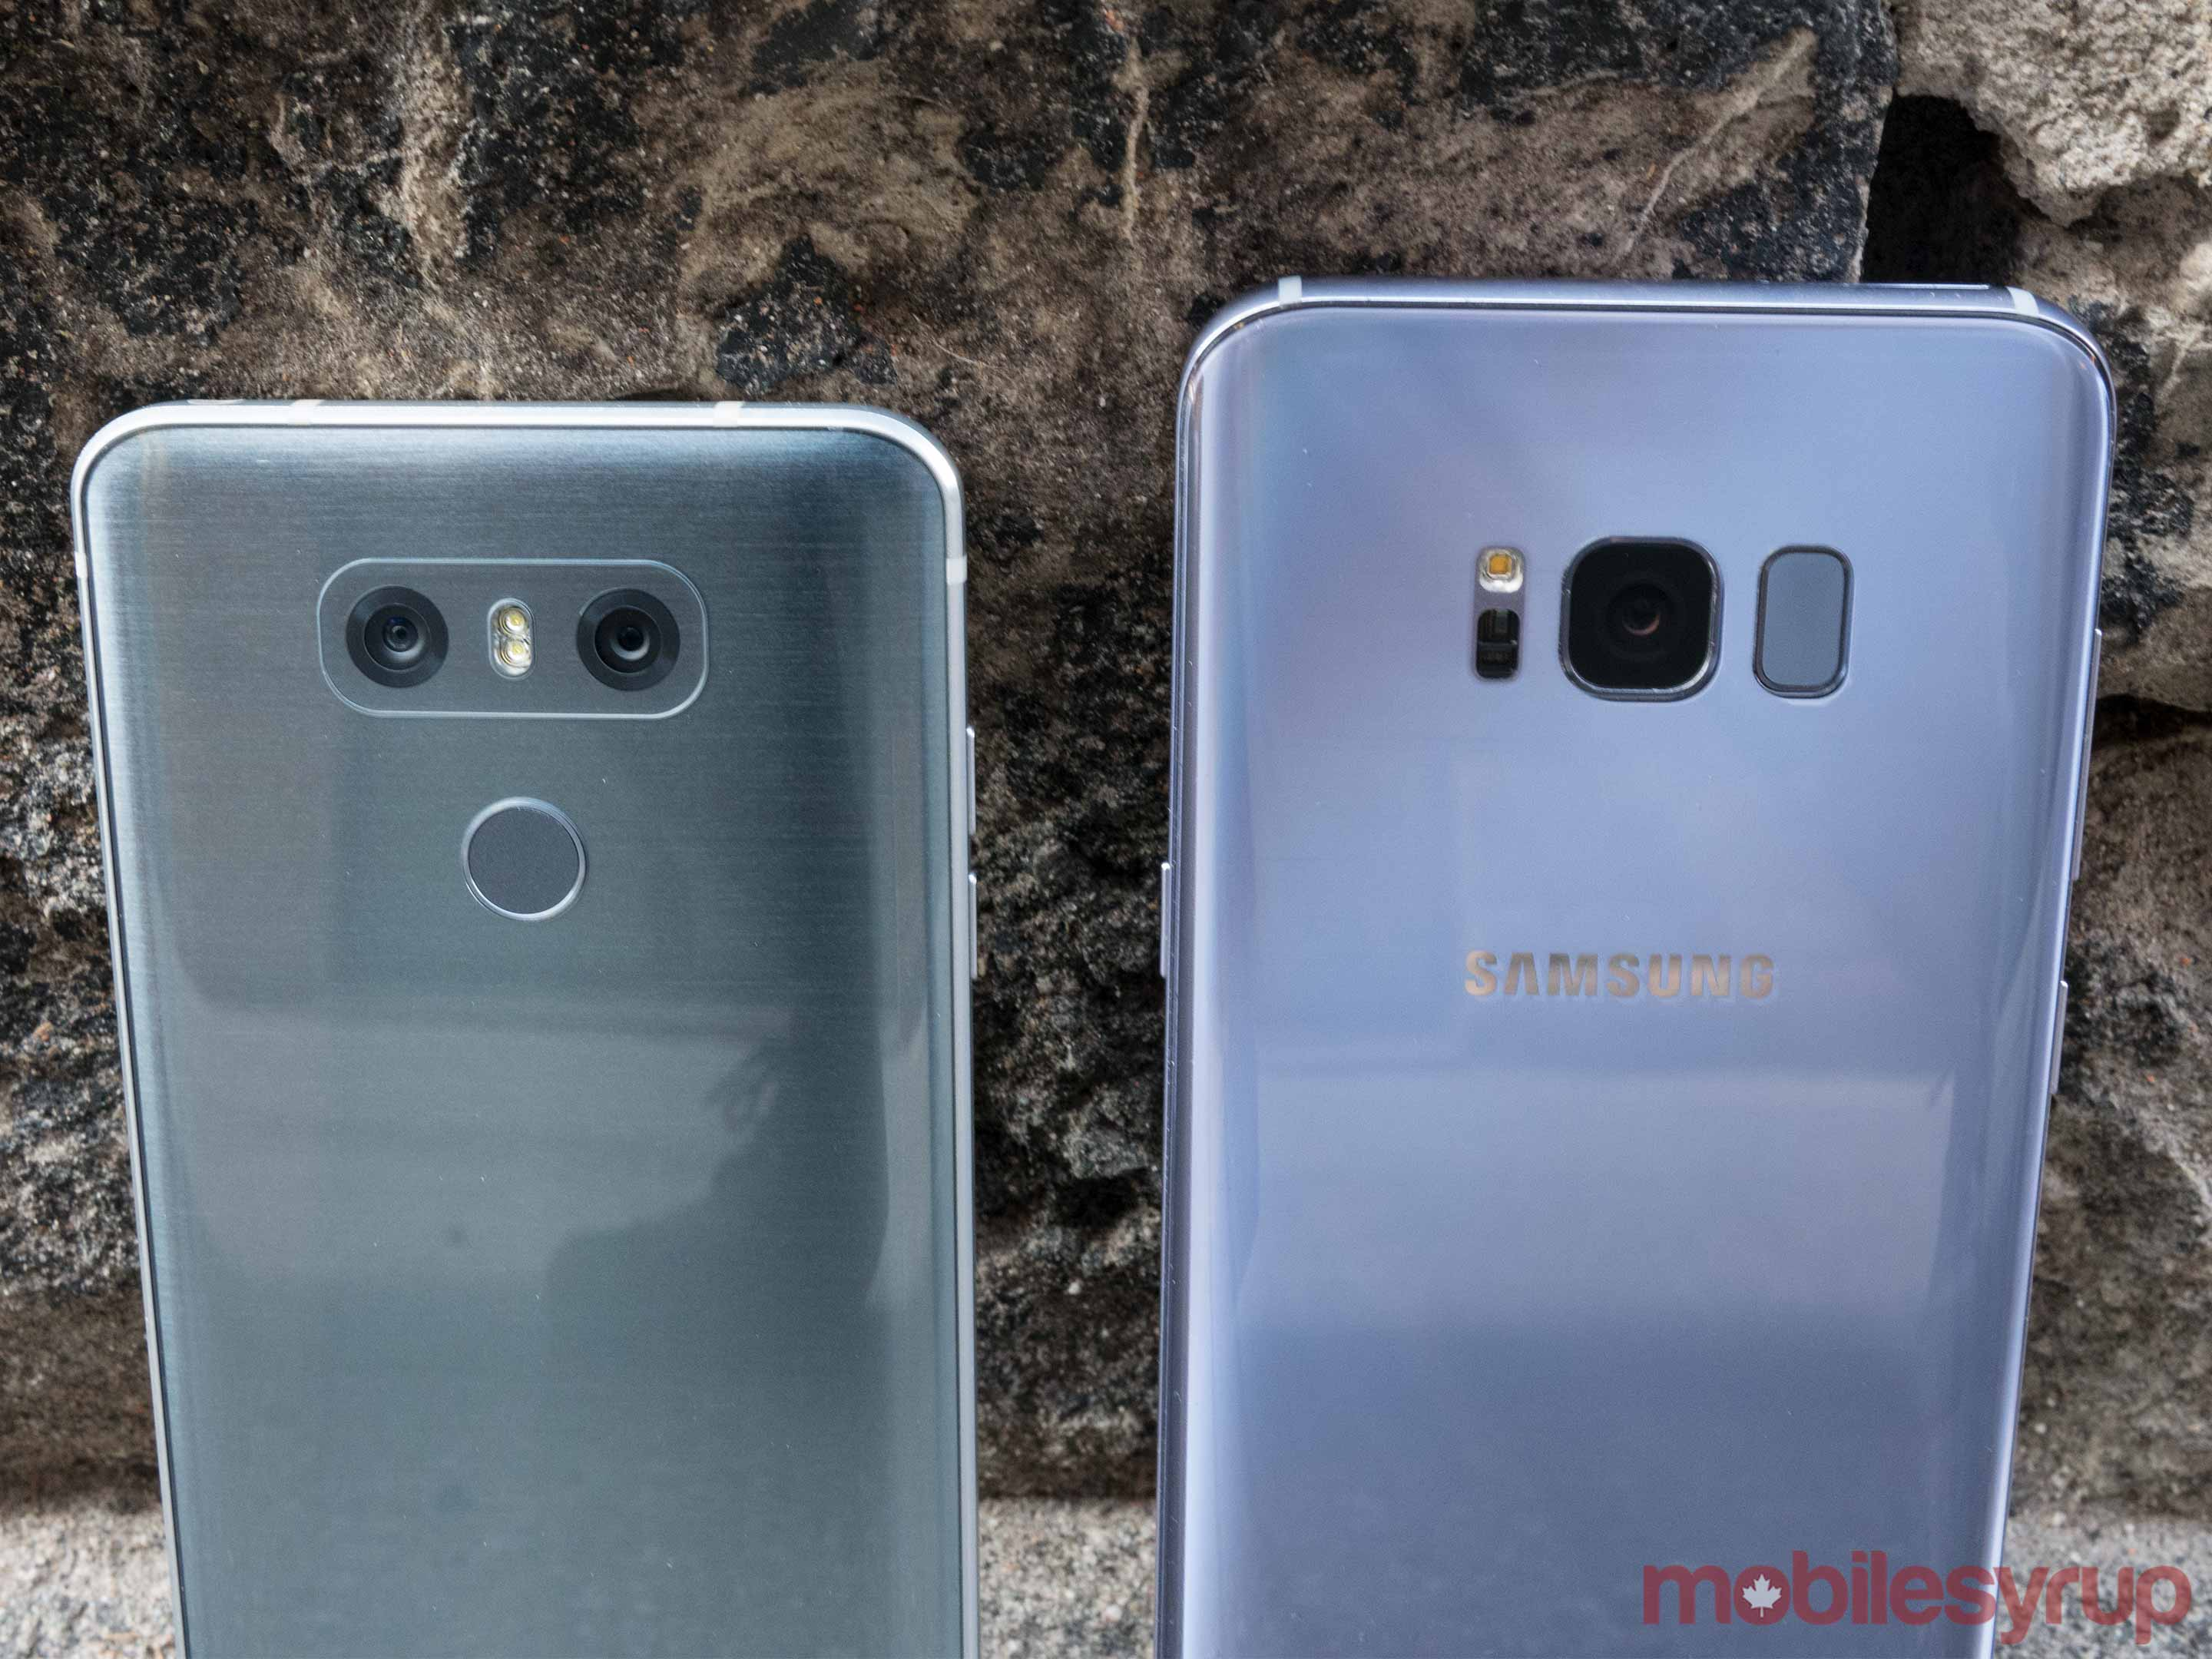 Galaxy S8+ and G6 backs